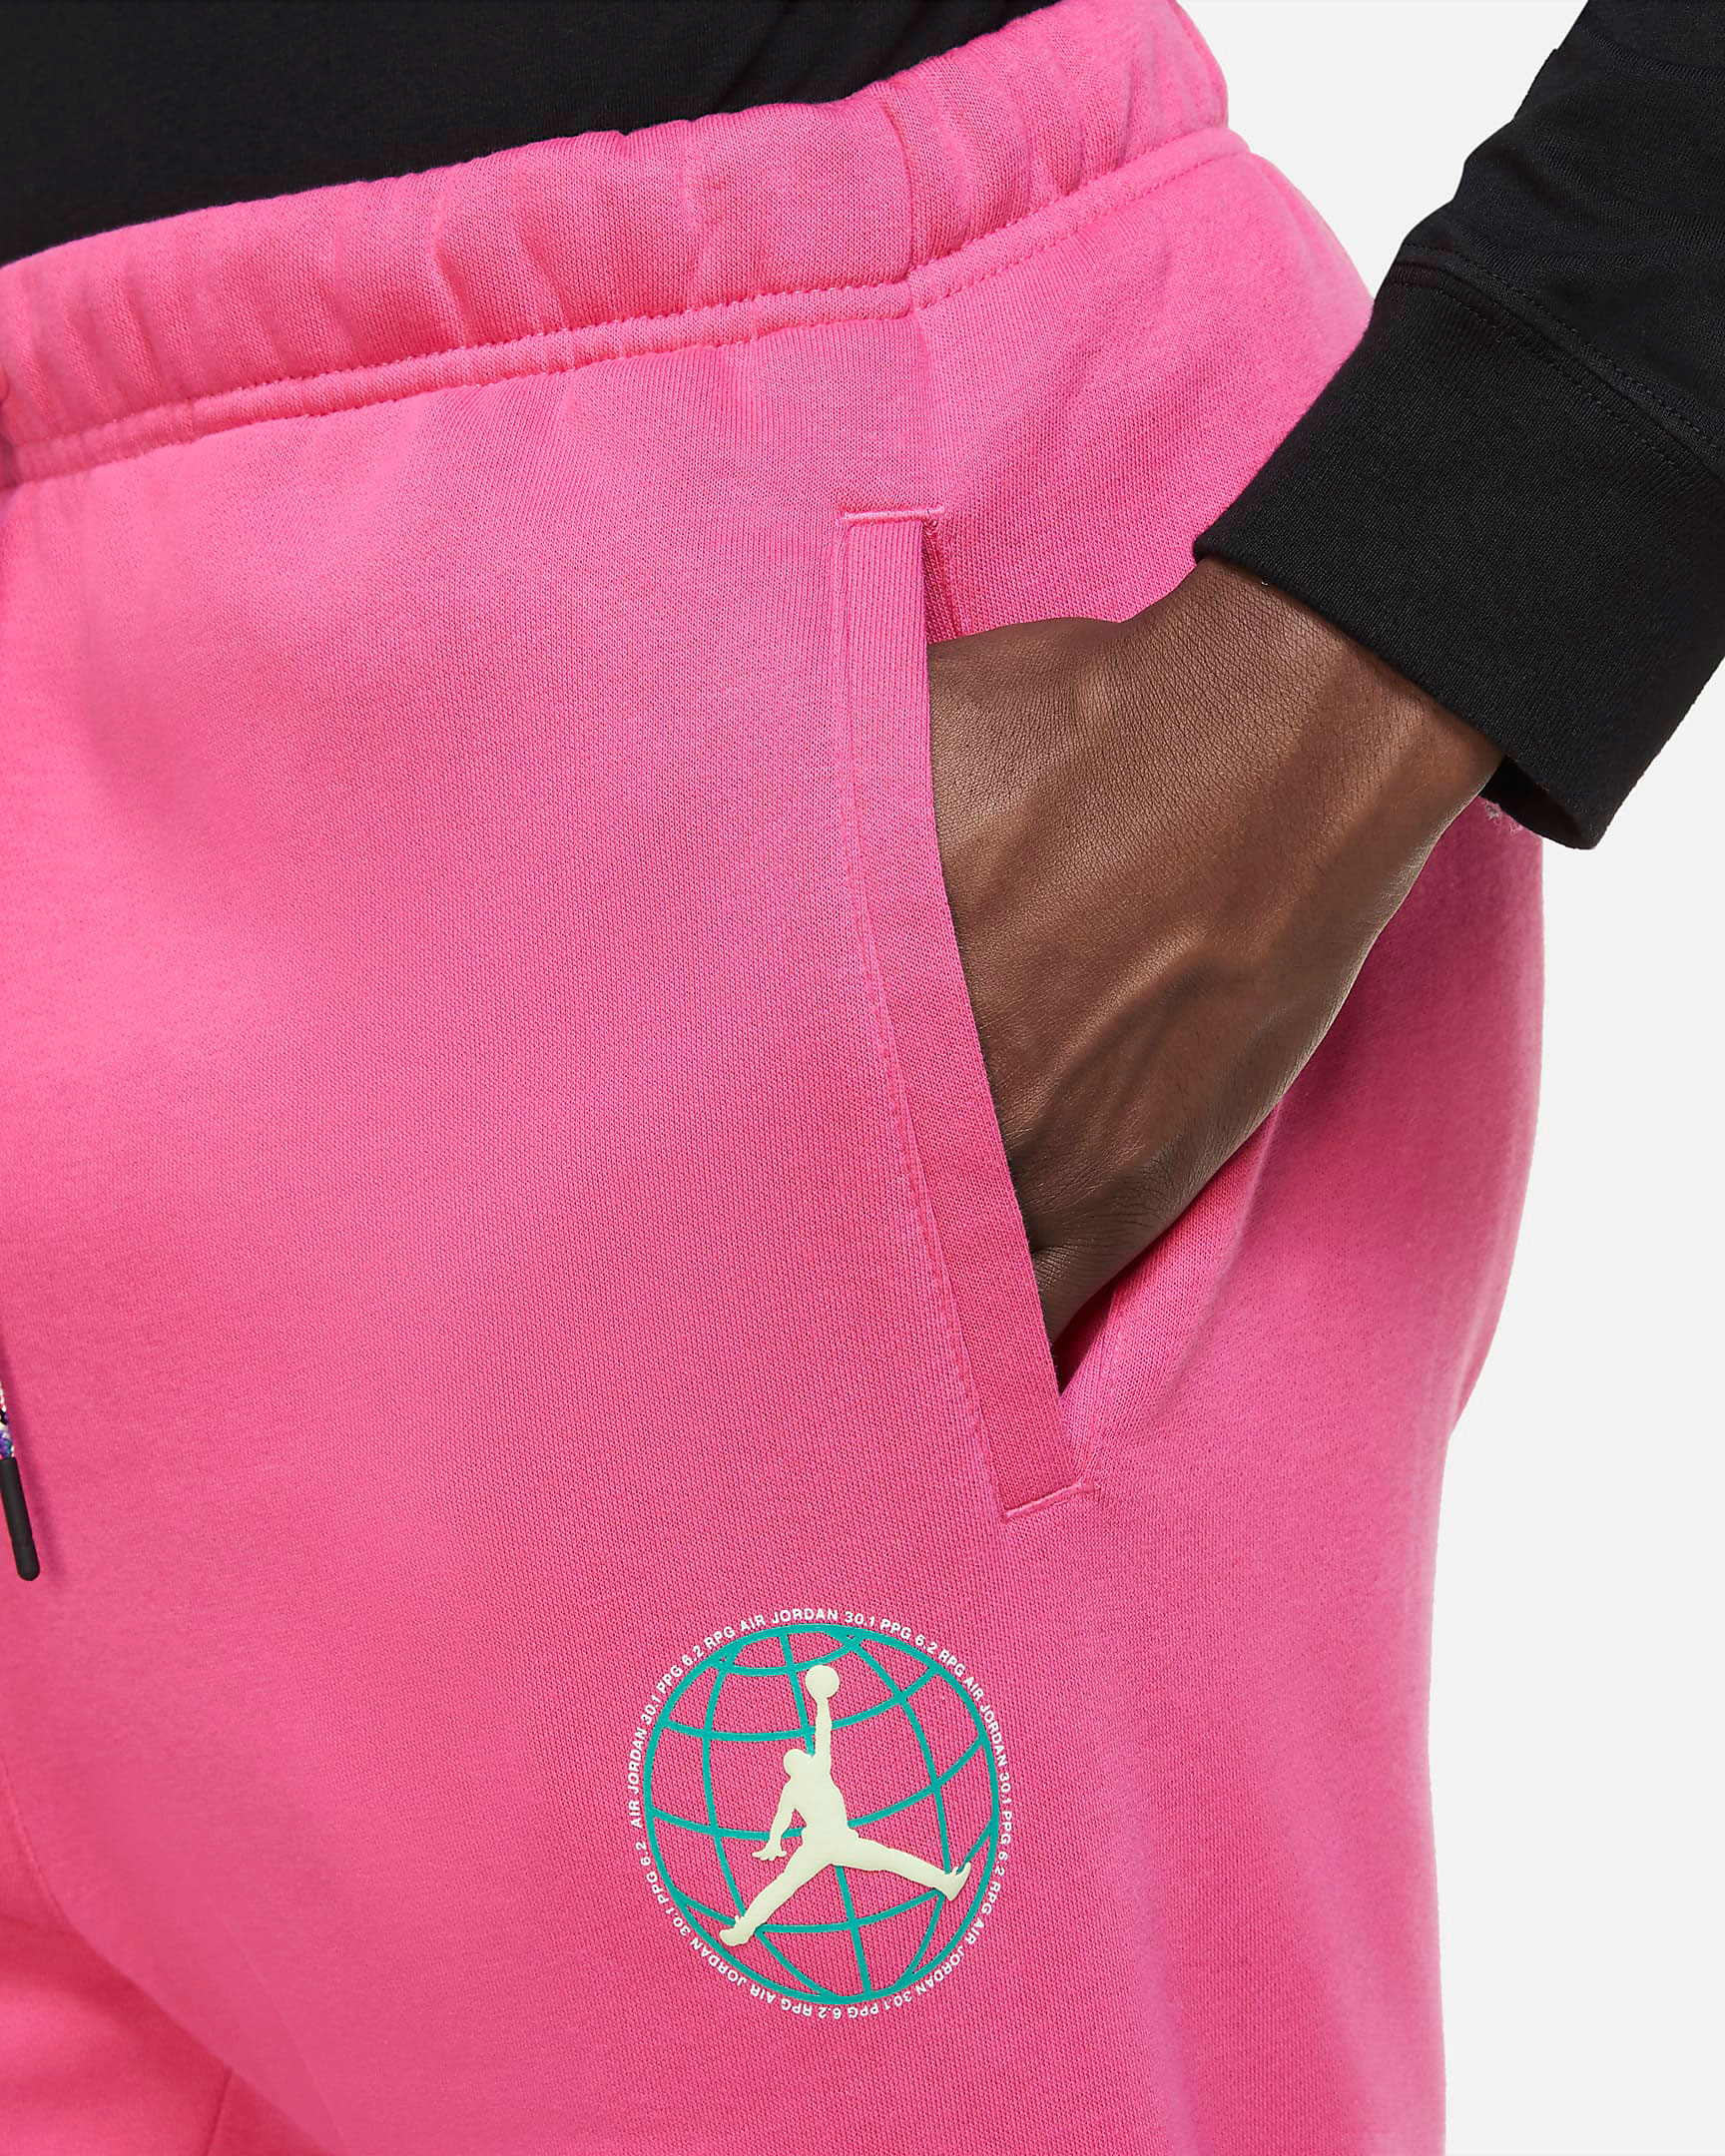 jordan-winter-utility-pants-watermelon-pink-3